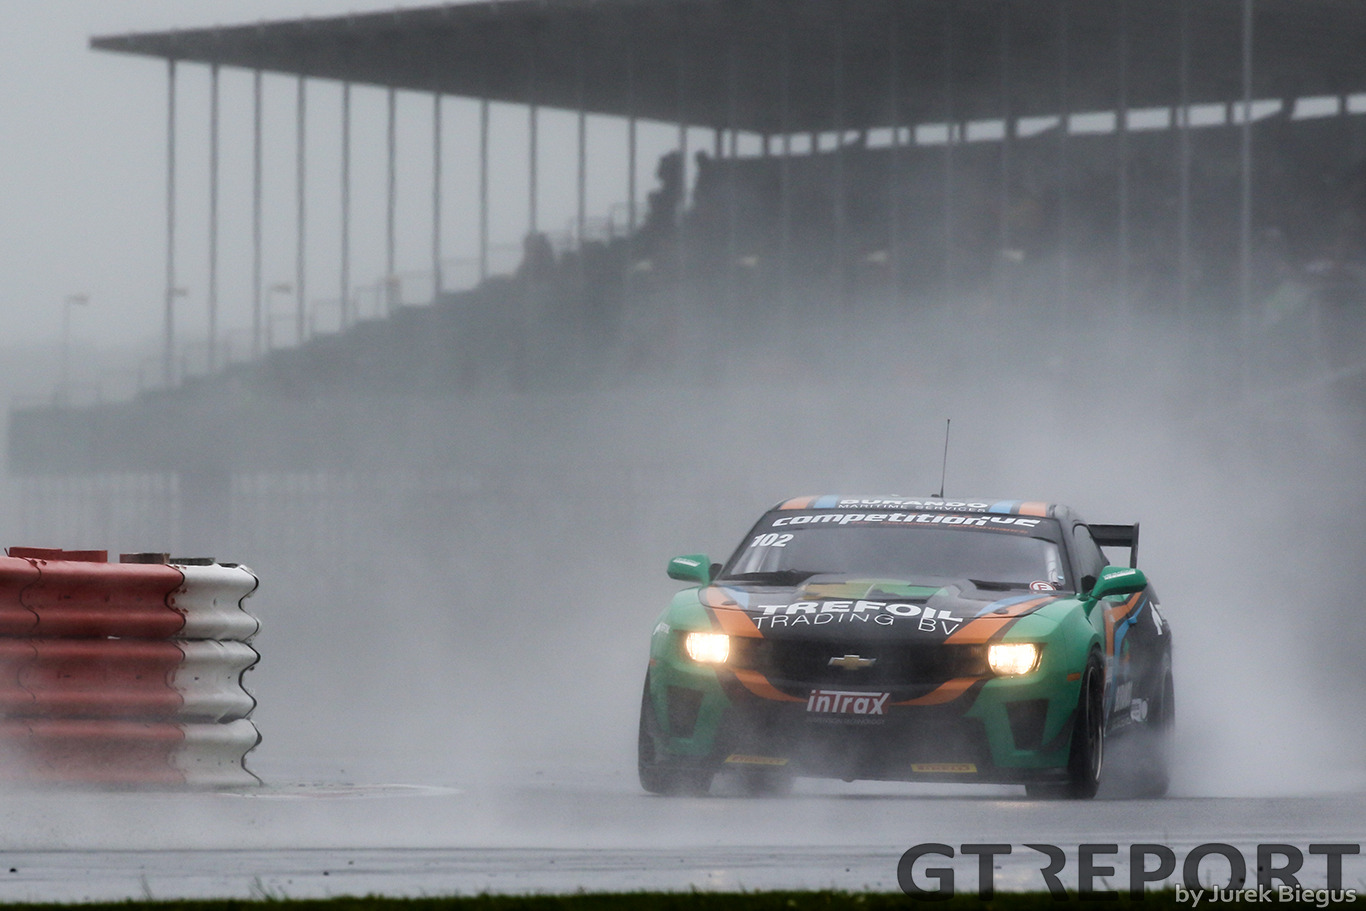 Weekend round-up: British GT, Italian GT, European GT4